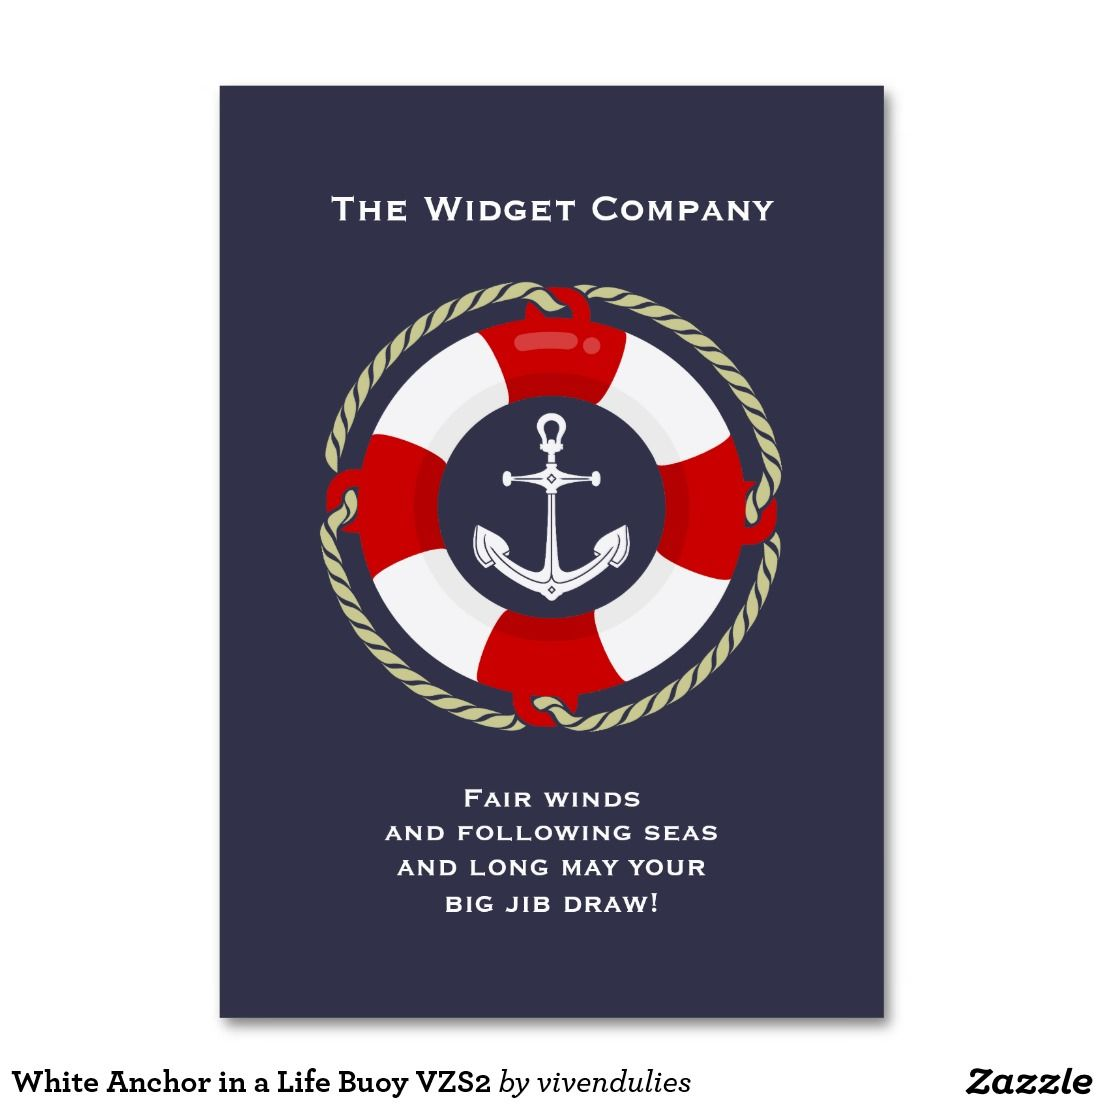 White Anchor in a Life Buoy VZS2 Business Card | Business cards and ...